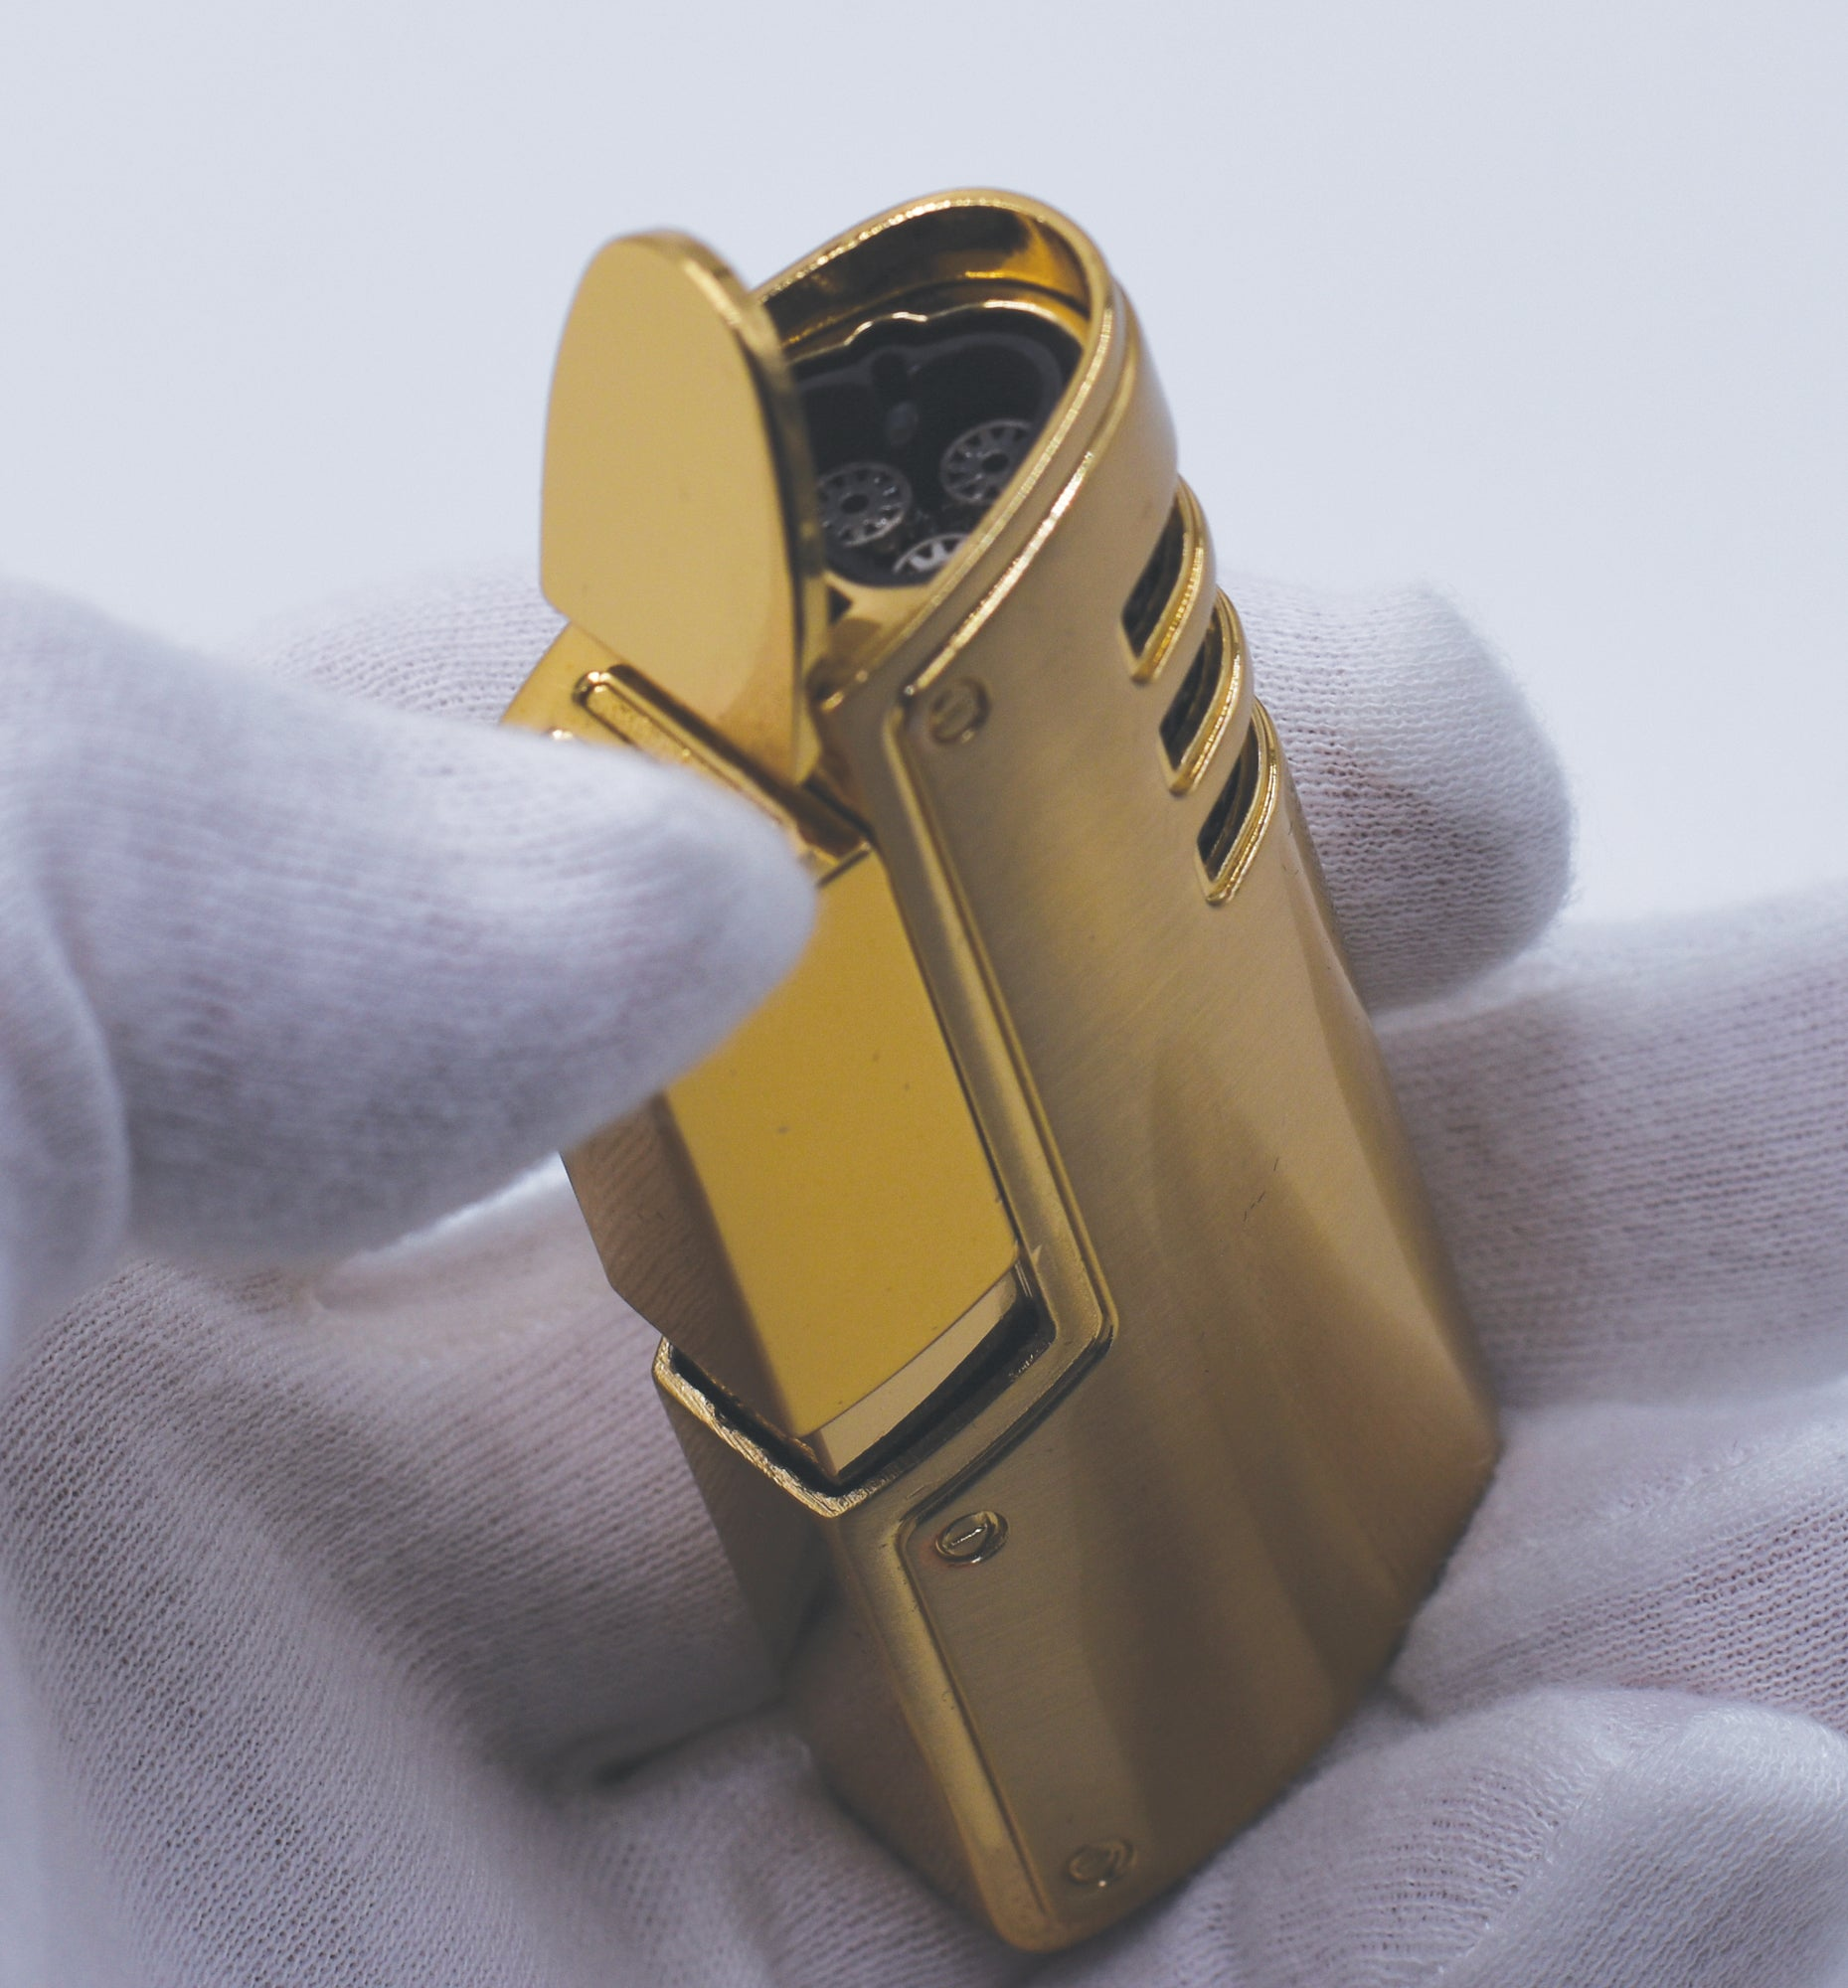 Sikaro Cyclone Triple Torch Lighter w/cigar punch 06-06-303 Titanium